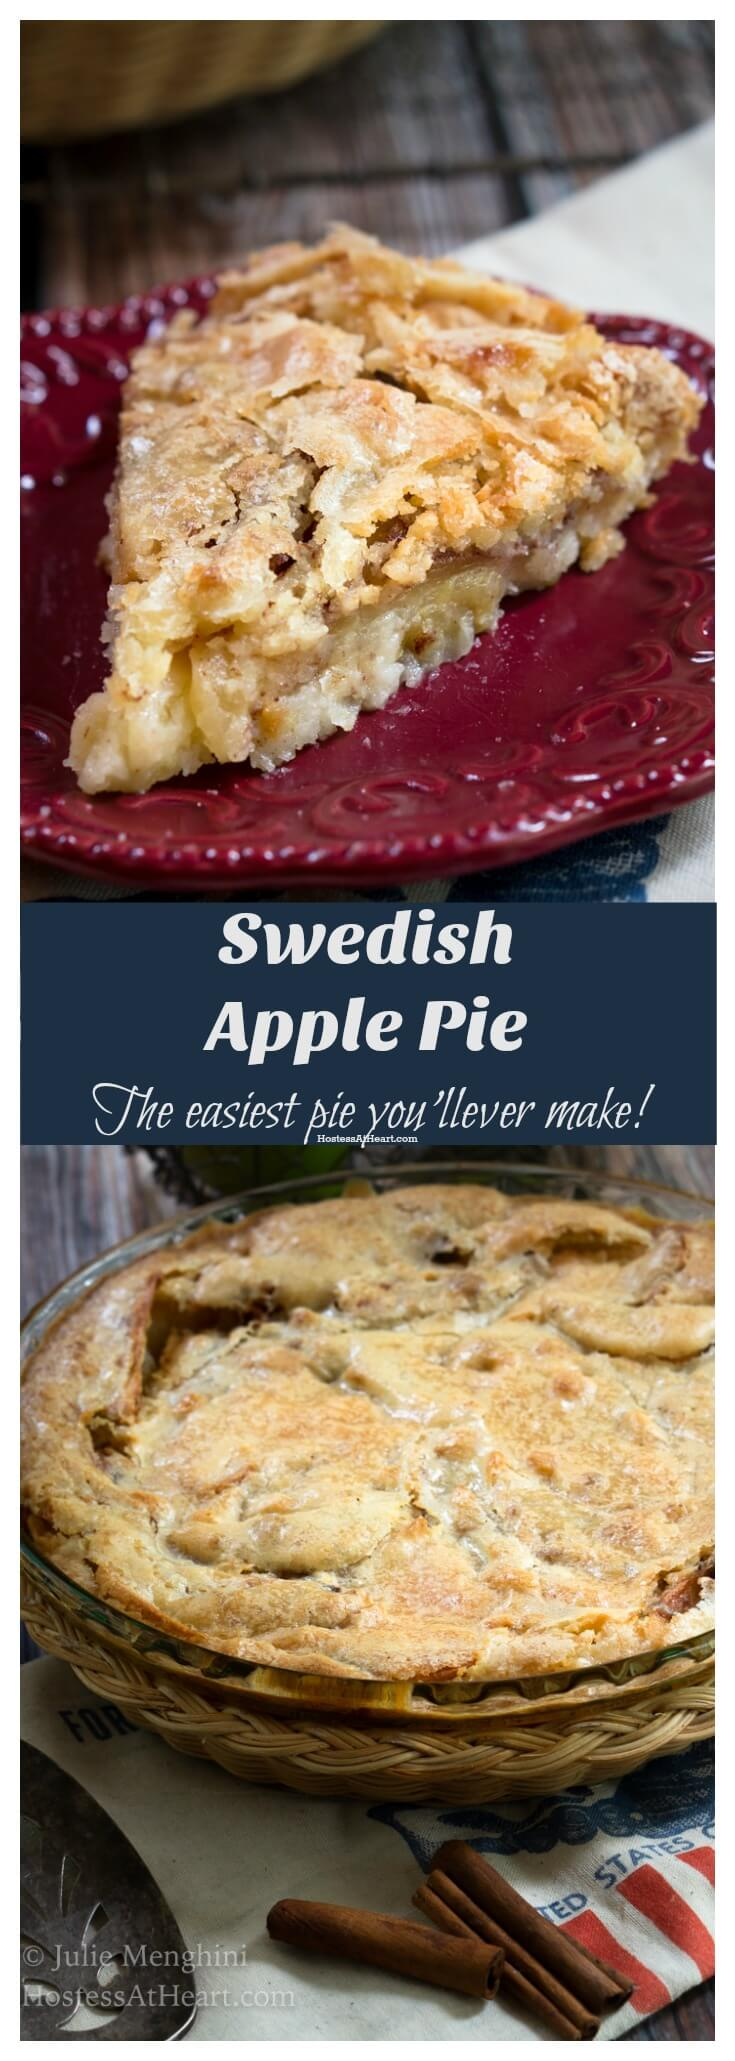 This Swedish Apple Pie is just as easy to make as it is delicious to eat. It's the perfect no-fuss pie for an easy dessert or for the beginnerbaker! HostessAtHeart.com #pie #applepie #piday #swedish #swedishapplepie #thanksgiving #christmas #easter #dessert #recipe #numstheword